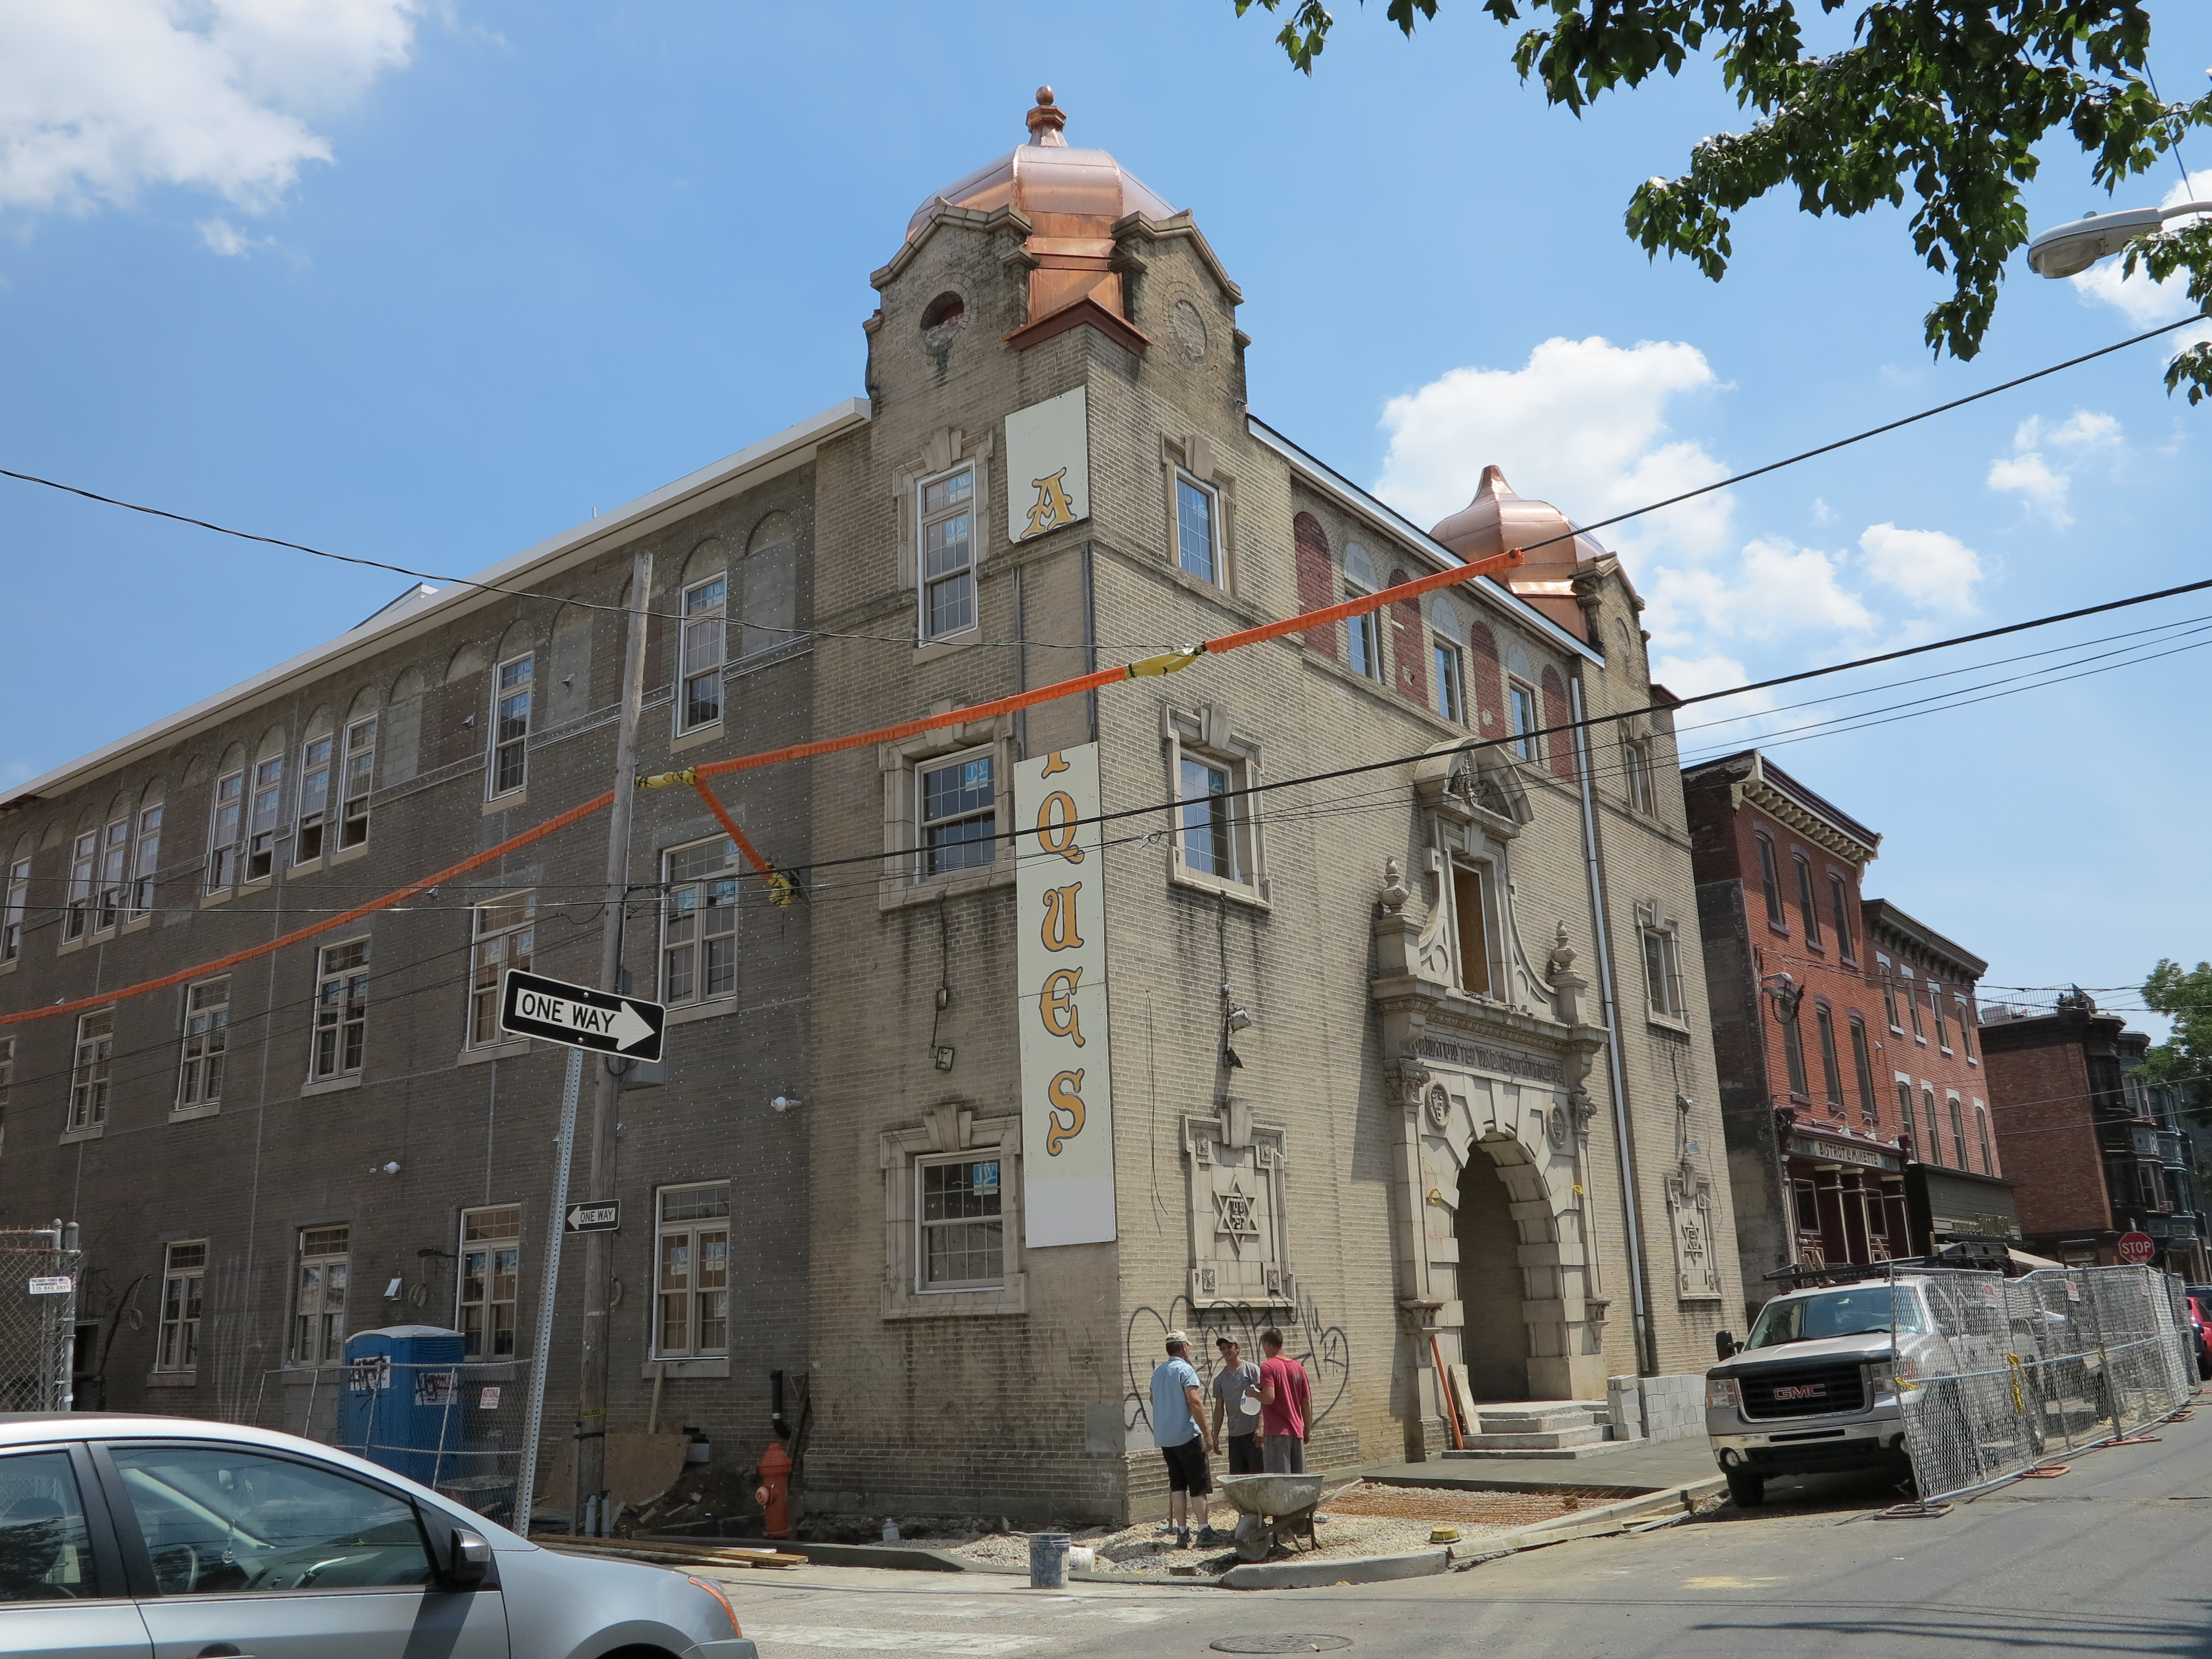 New domes on historic synagogue being converted to residential on South 6th Street, June 2014